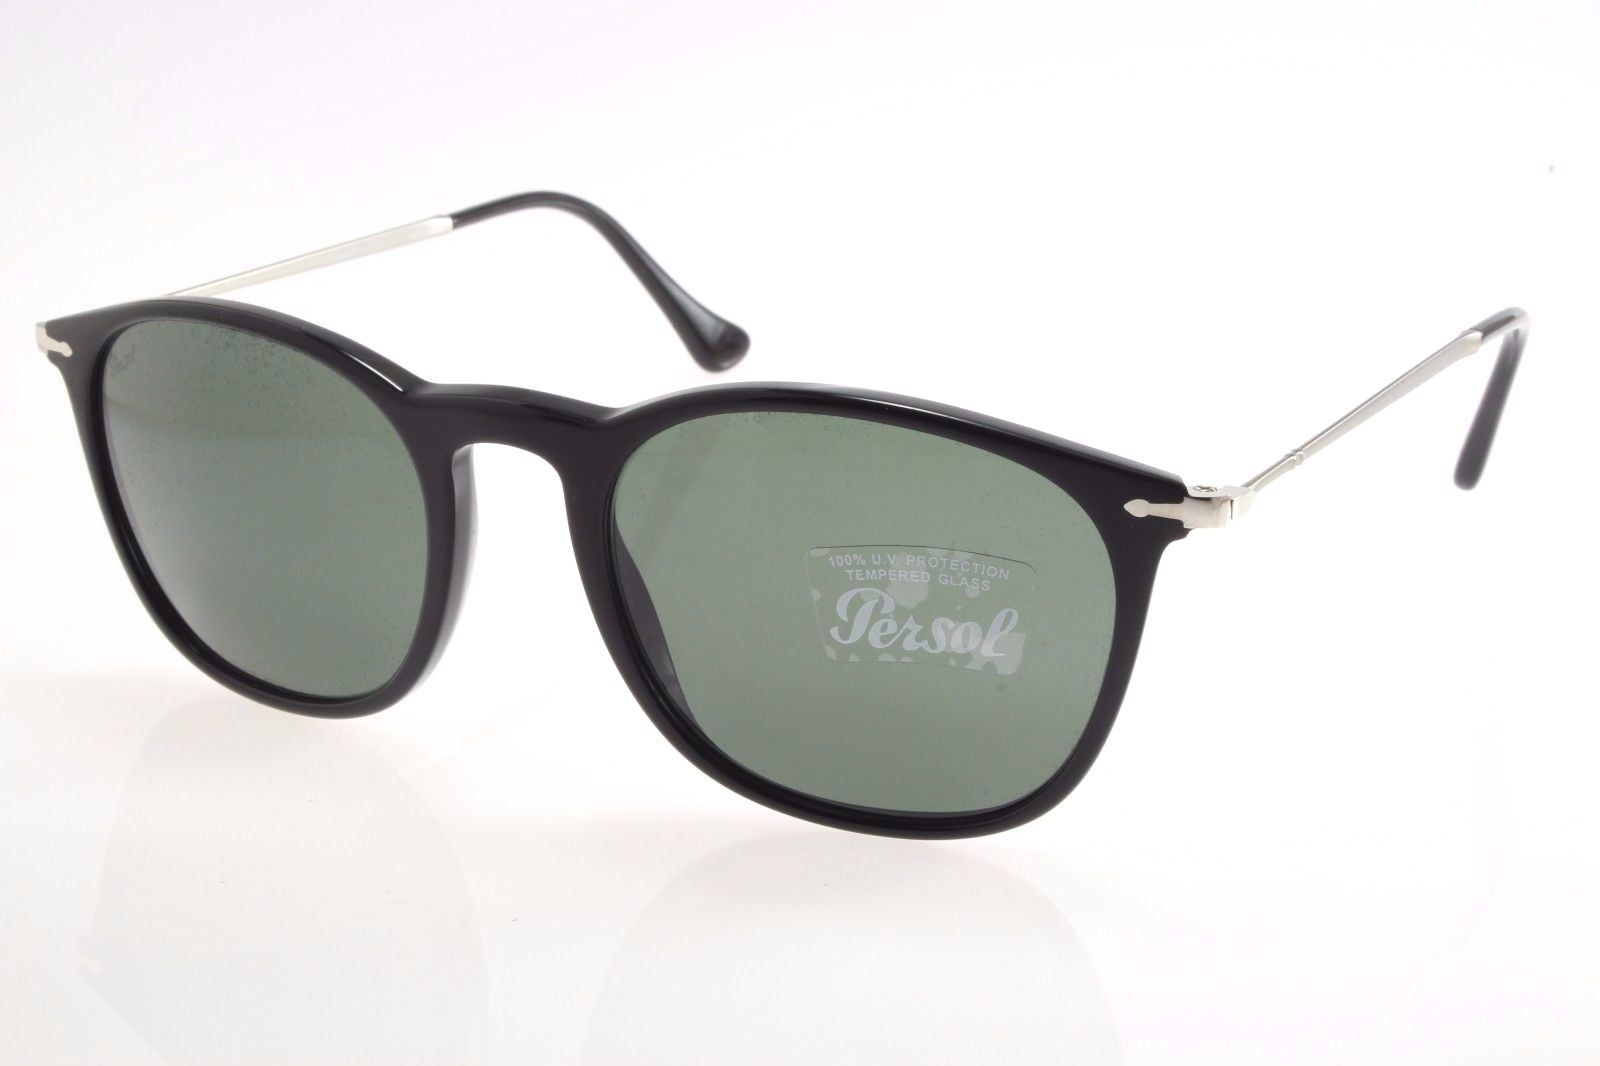 09bb0ec7ee New authentic sunglasses Persol 3124S 95 31 50 Black   Green Crystal 50mm